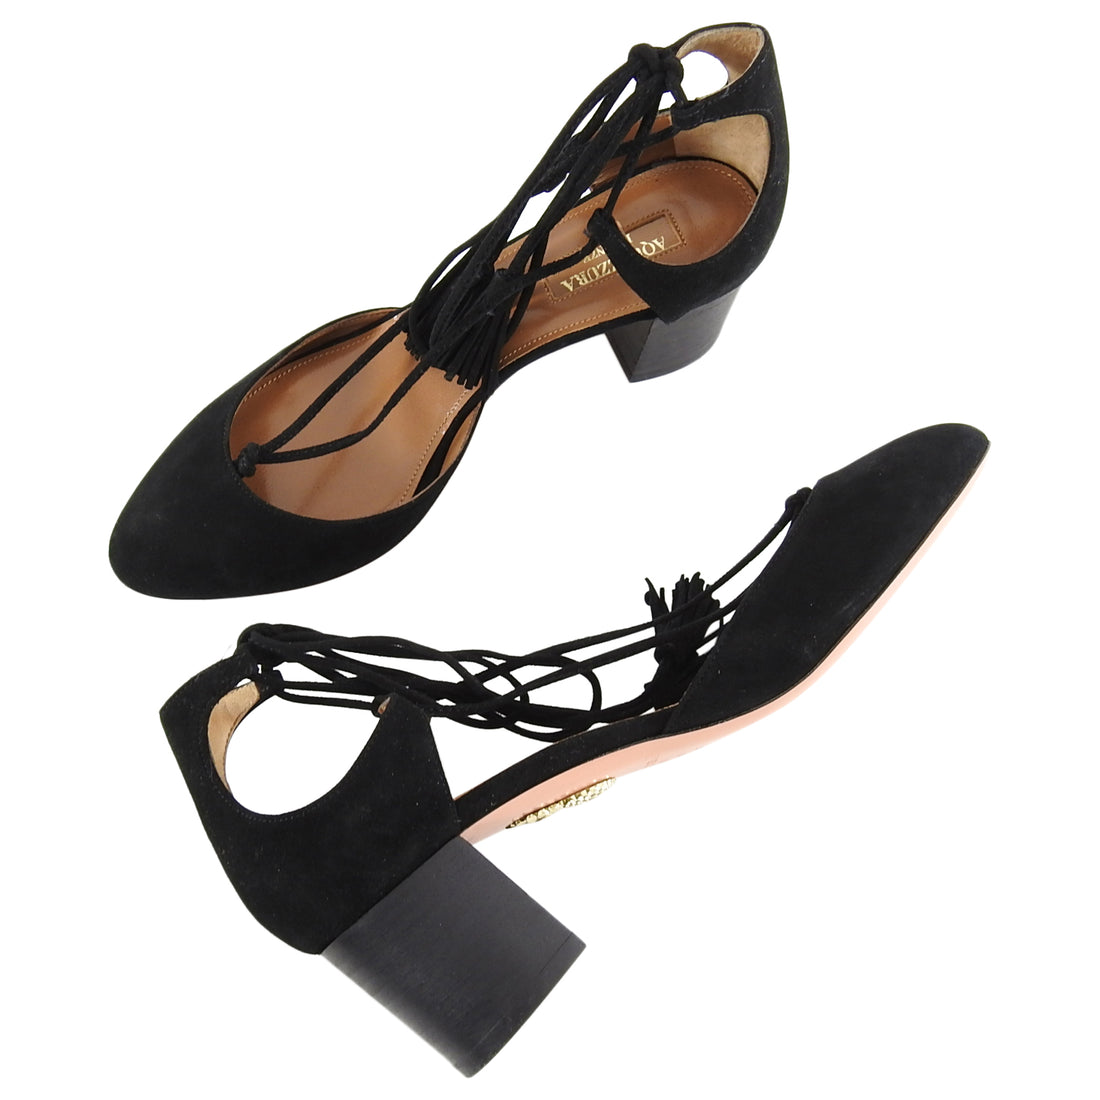 Aquazzura Black Suede Boheme Low Block Heel Shoes - 36.5